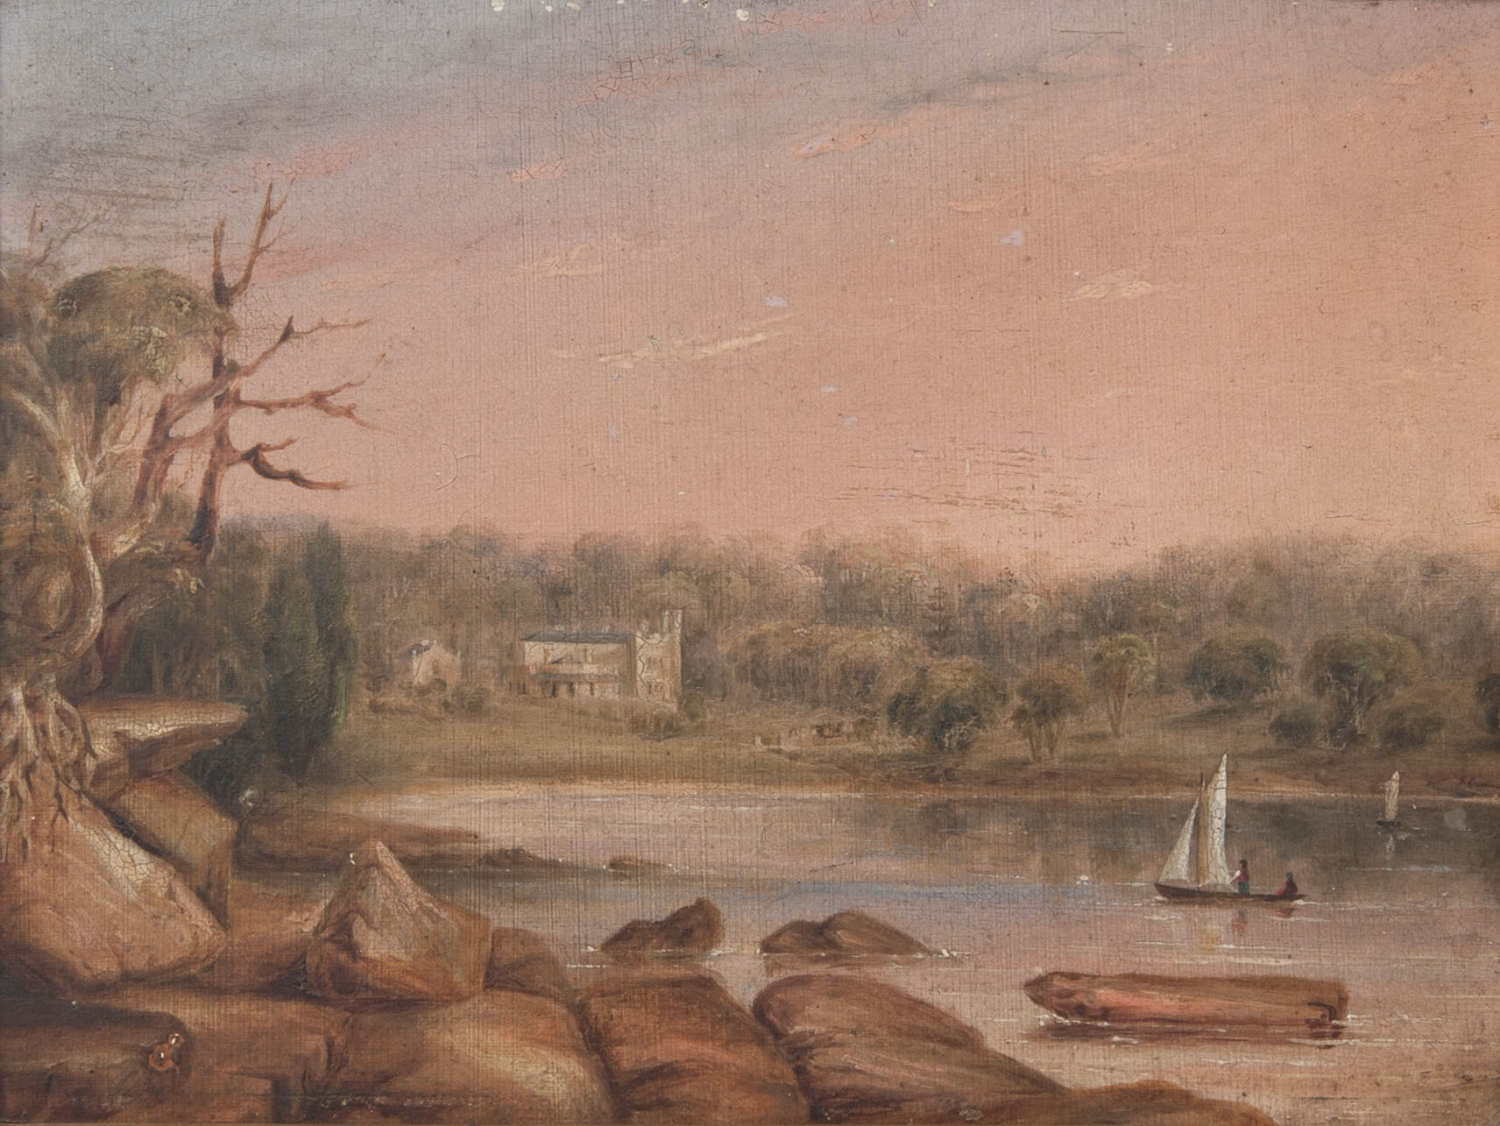 Oil on board. Foreground of rocks and water with a small sailing boat. House in background.